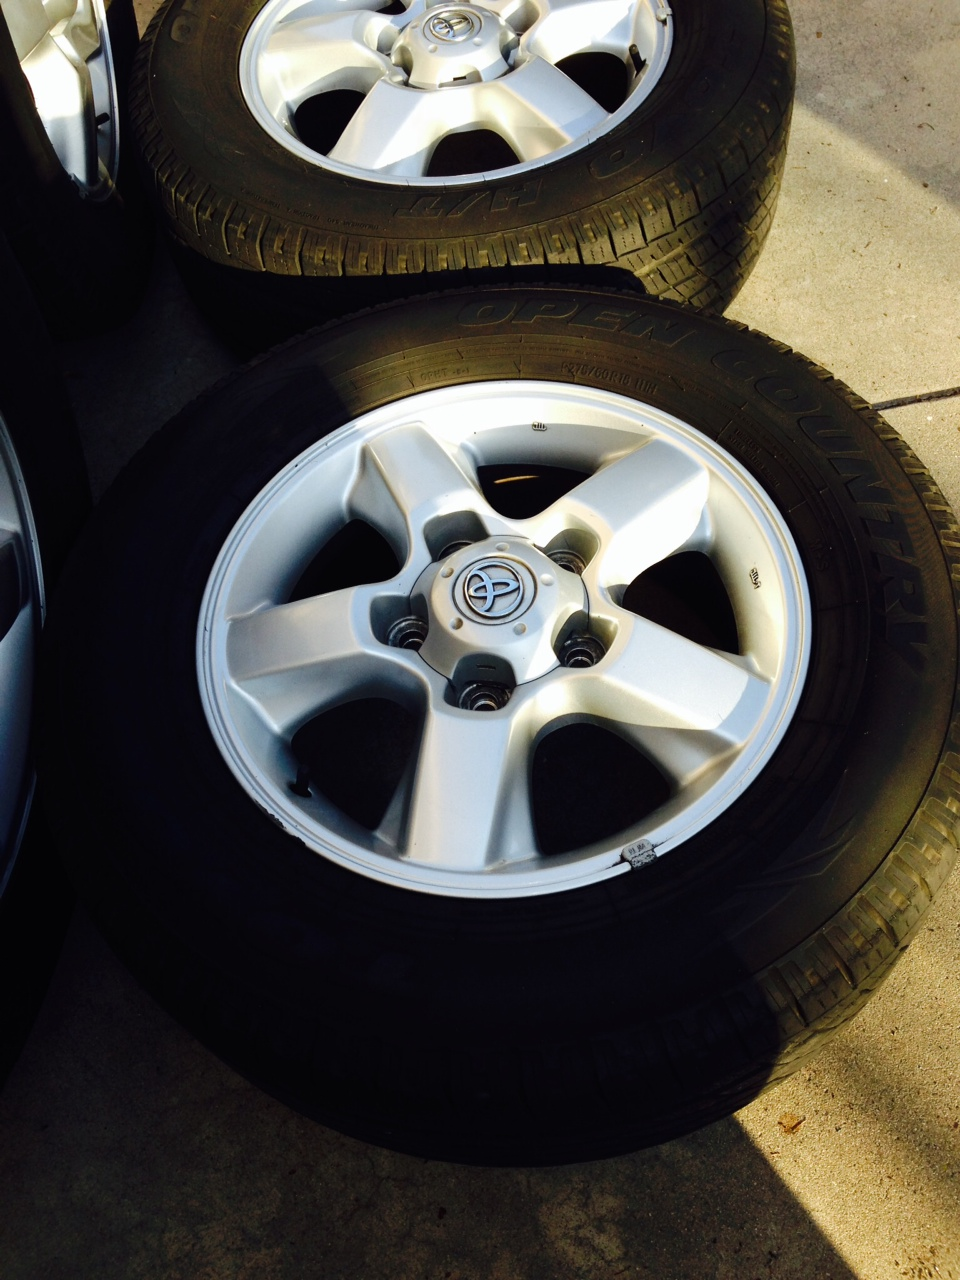 For Sale - Wheels with tires Toyota Land Cruiser - $600 ...